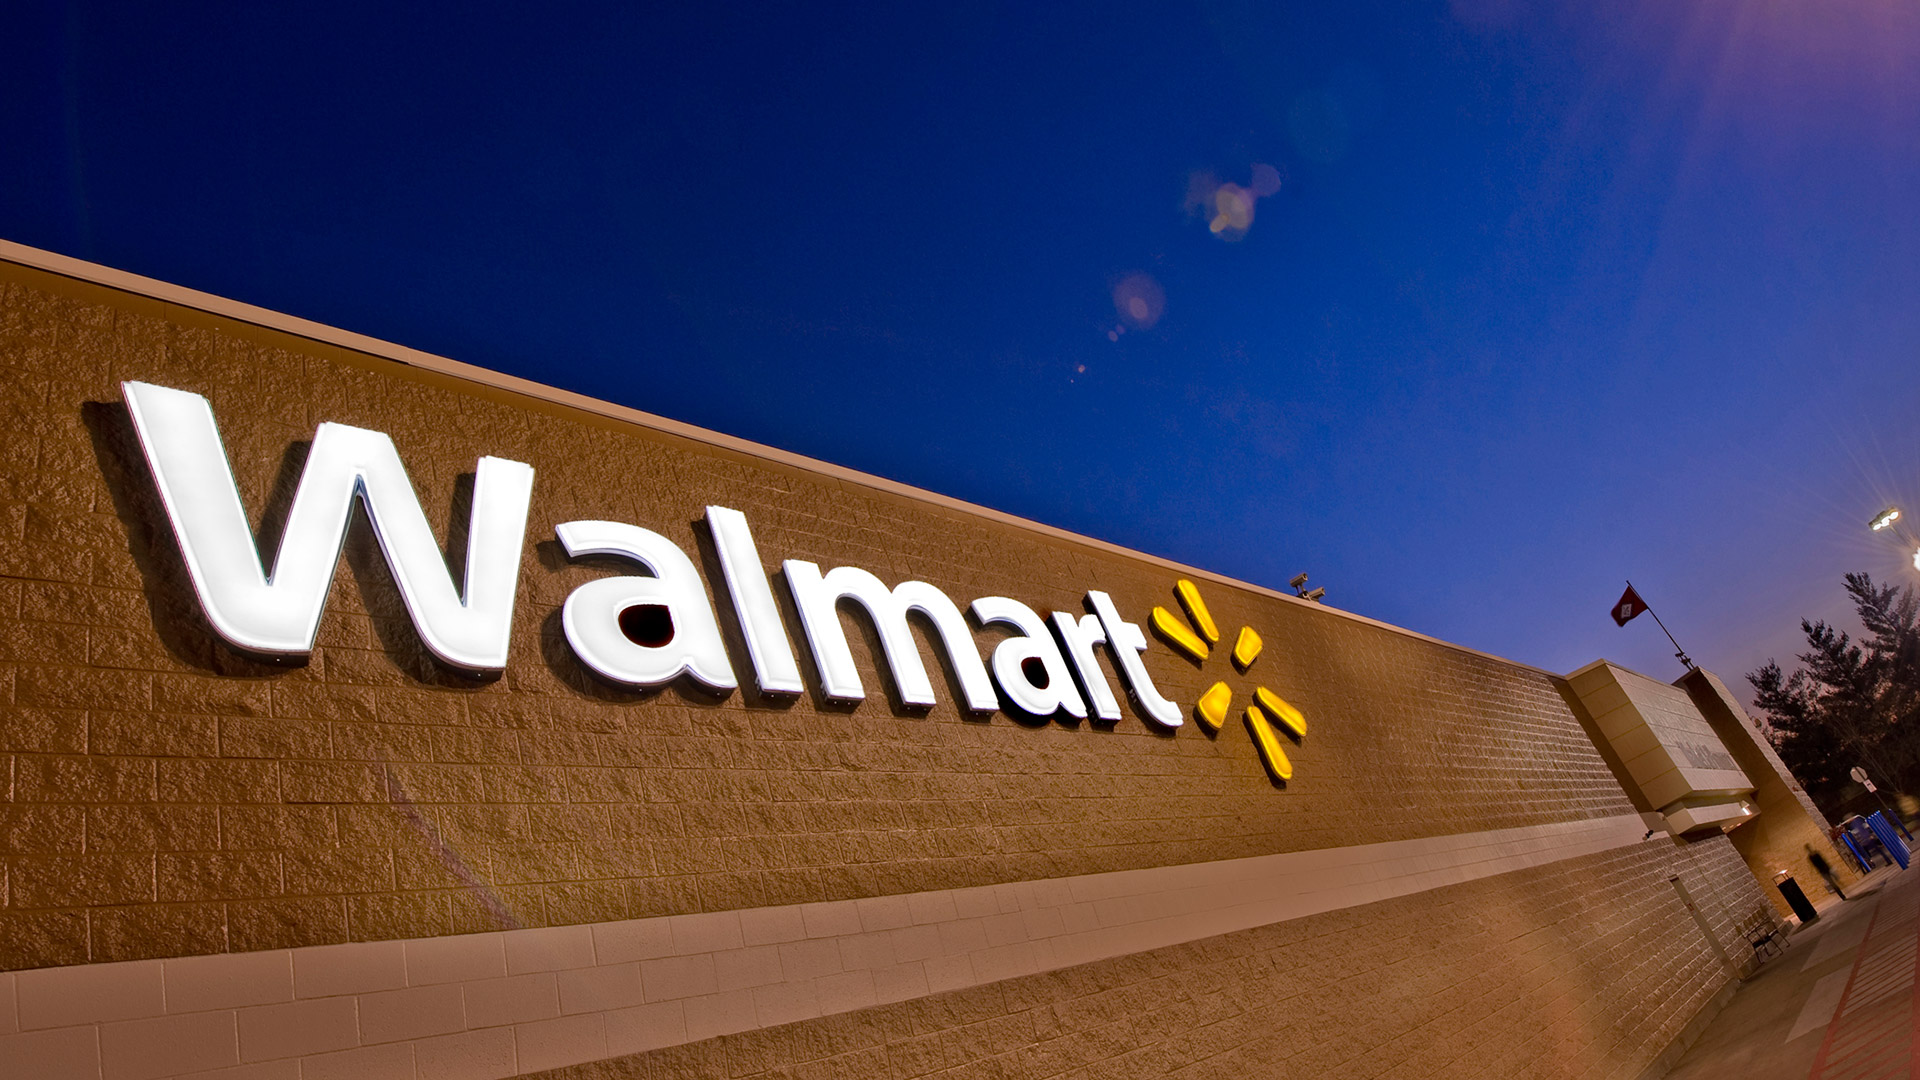 Survey: Almost one-third of Amazon sellers plan to expand to Walmart.com this year